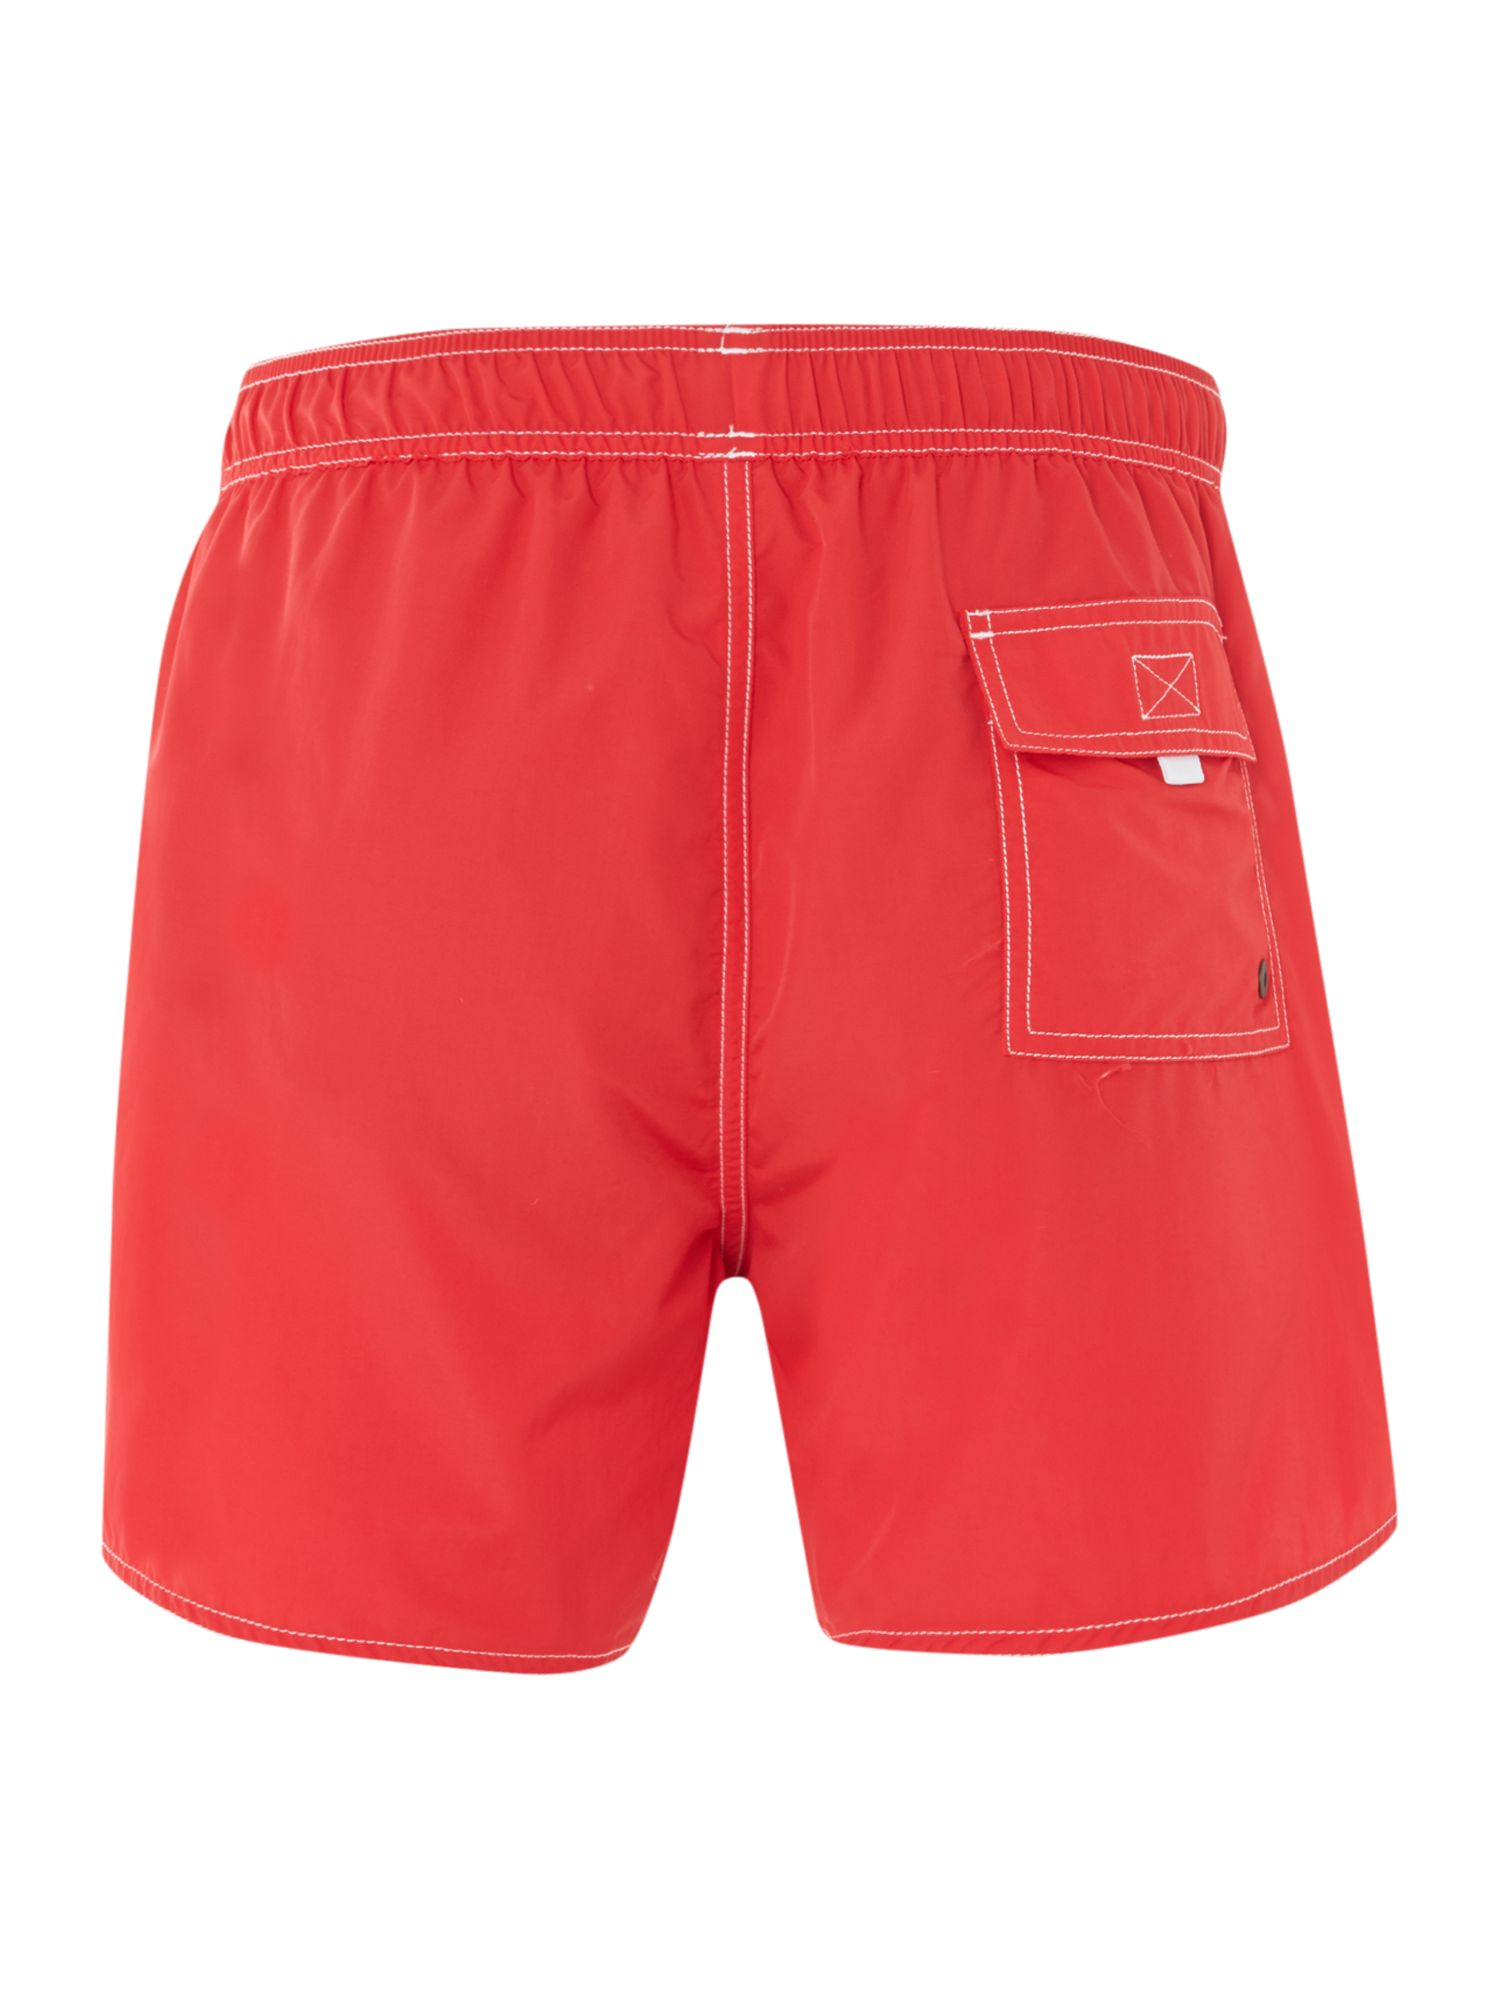 Lobster logo swim short